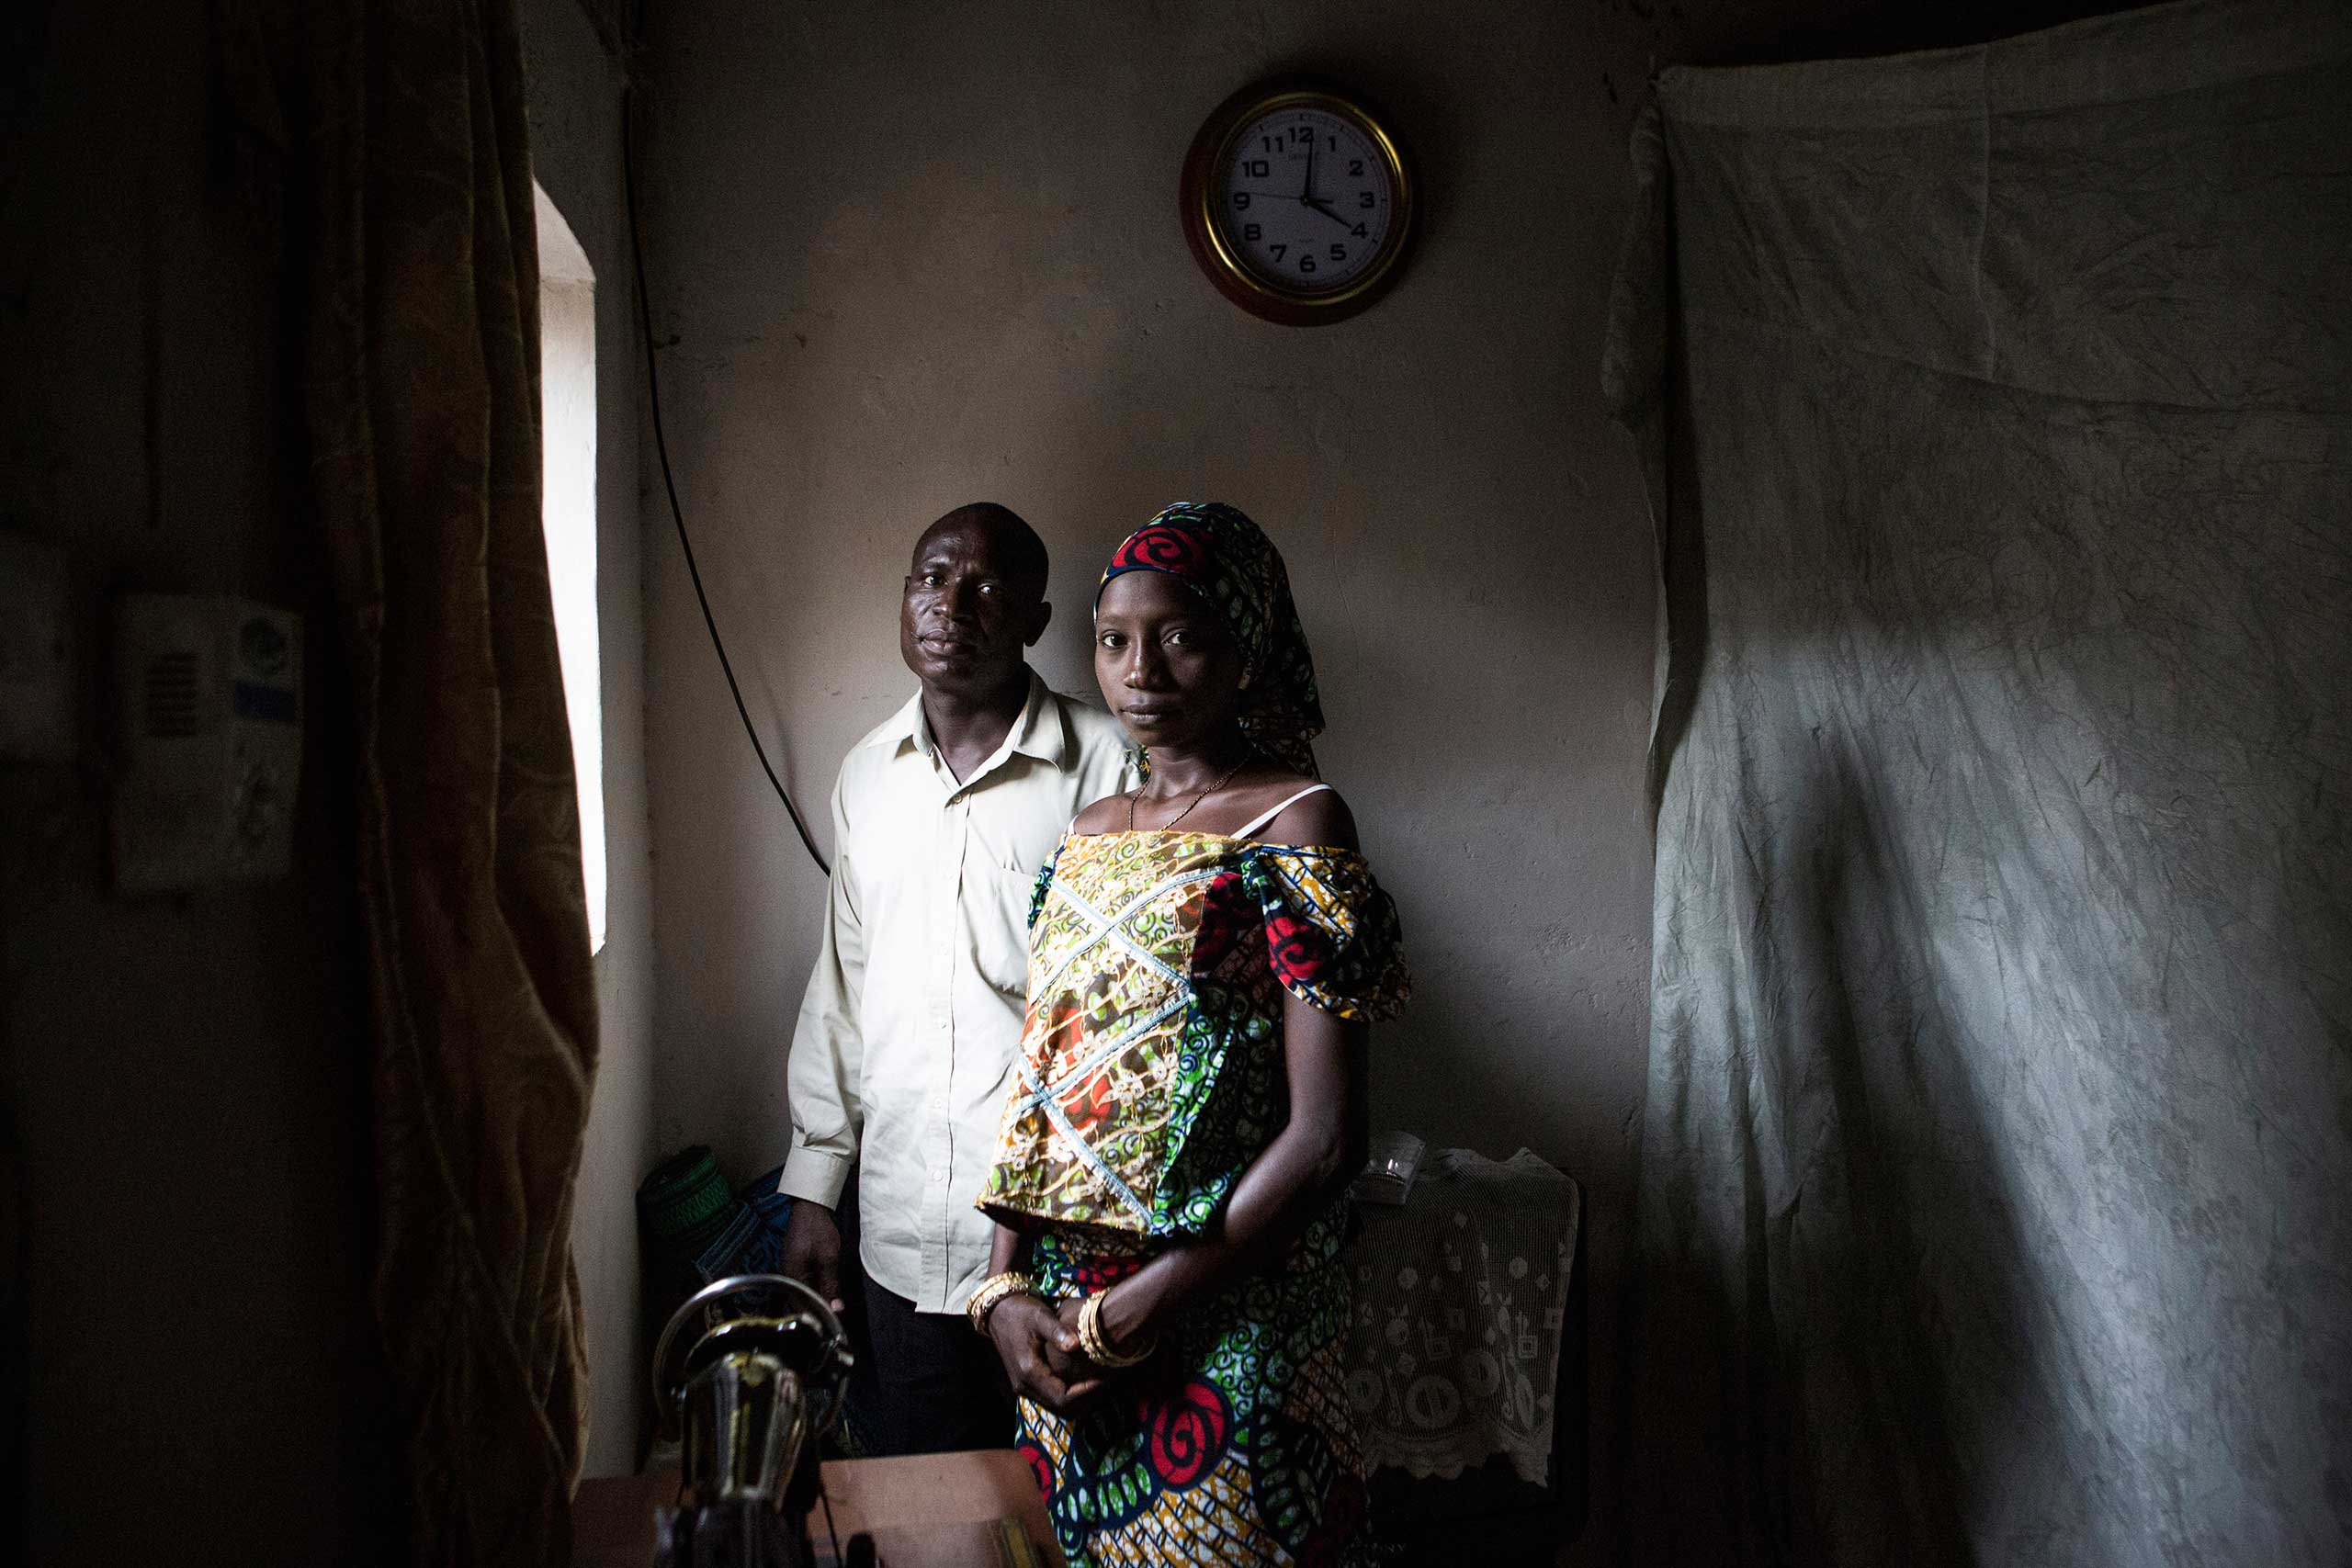 Ahmed Adama, age 35, had wanted to marry Jamaila Lawan, age 22, for more than a year when he heard about the mass wedding program organized by the Hisbah, Kano, Northern Nigeria, Oct. 7, 2013.